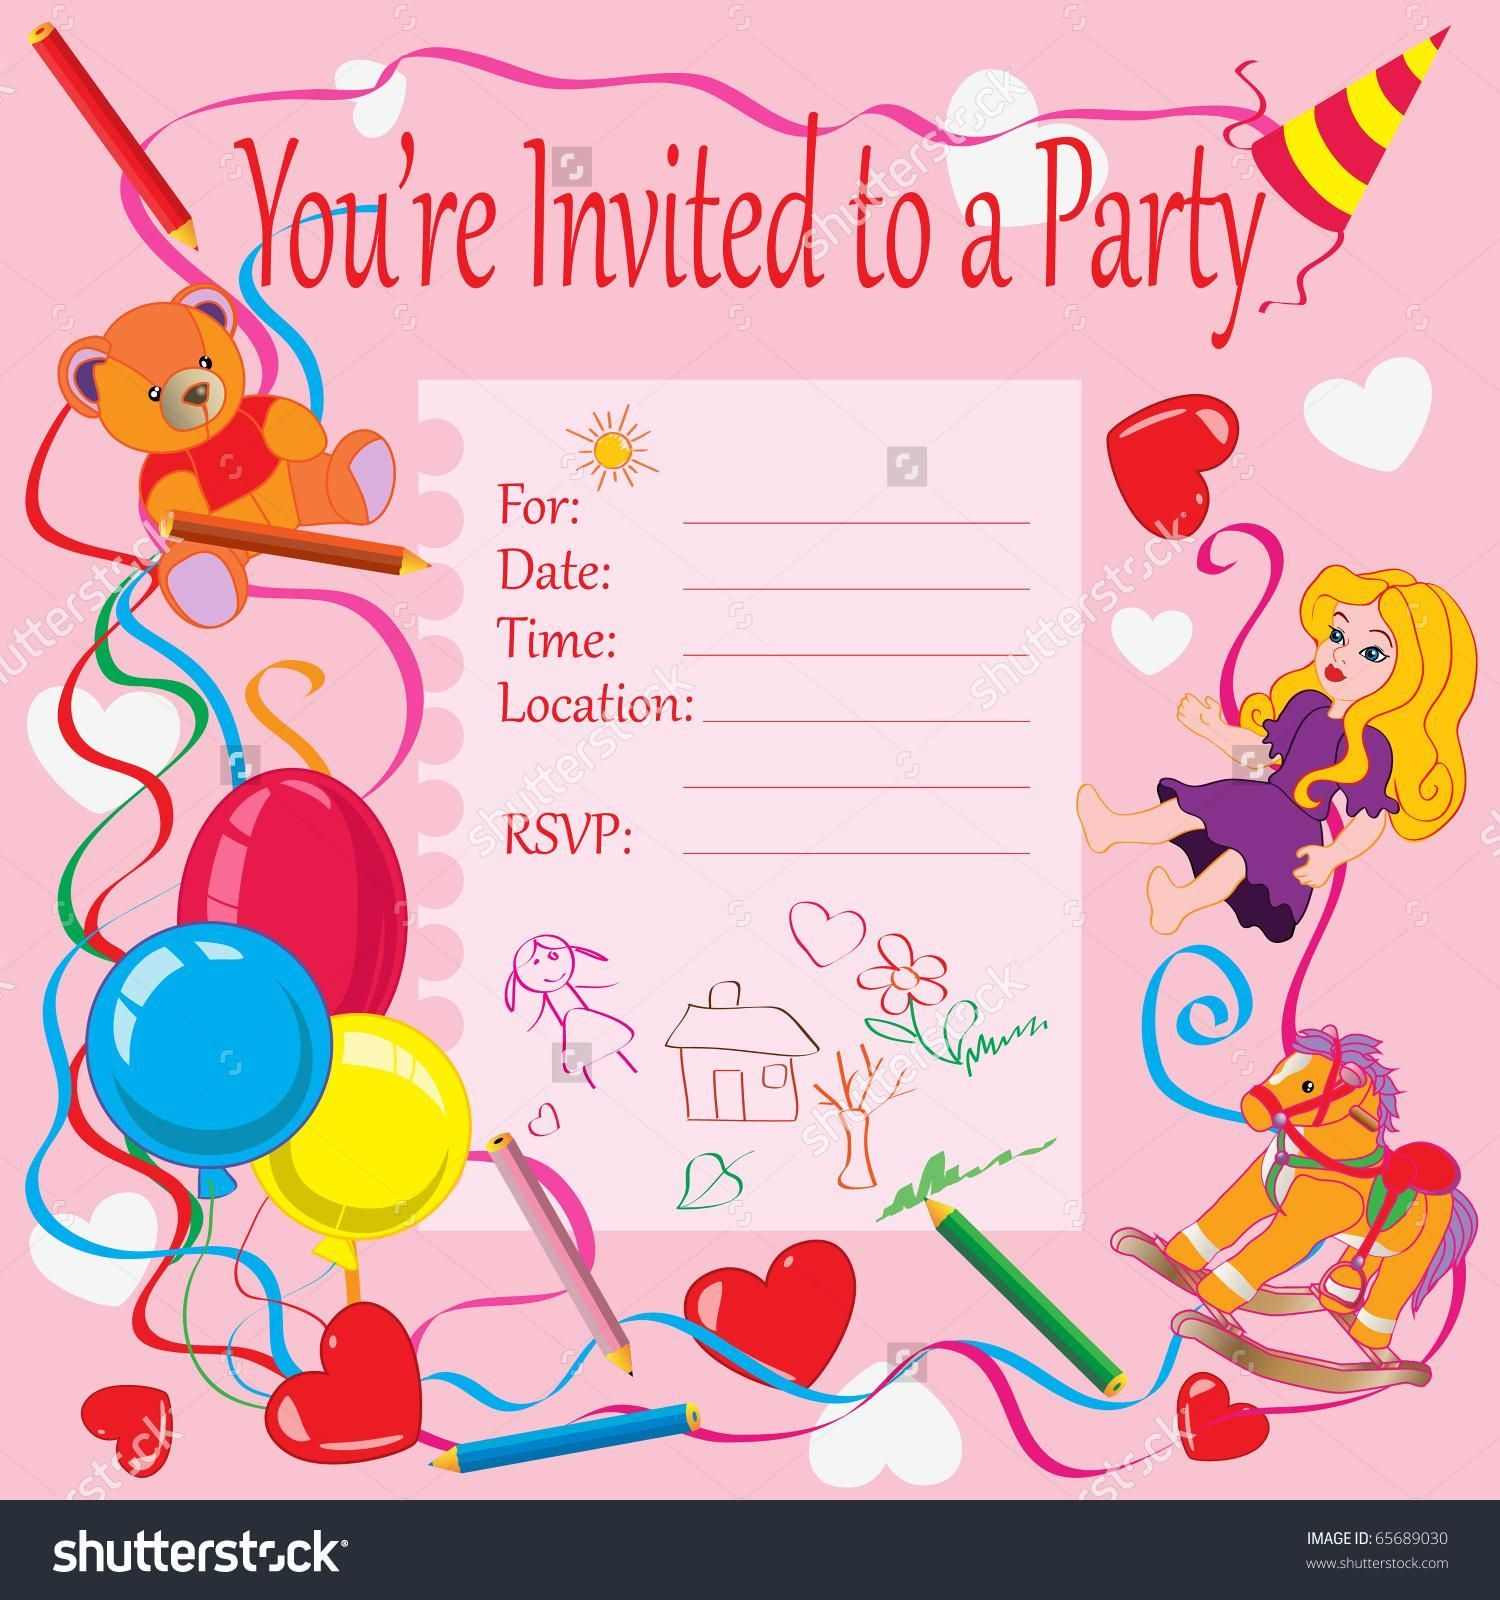 8 Top Card Party Invitation Ideas In 2021 Birthday Party Invitations Printable Invitation Card Birthday Kids Birthday Party Invitations